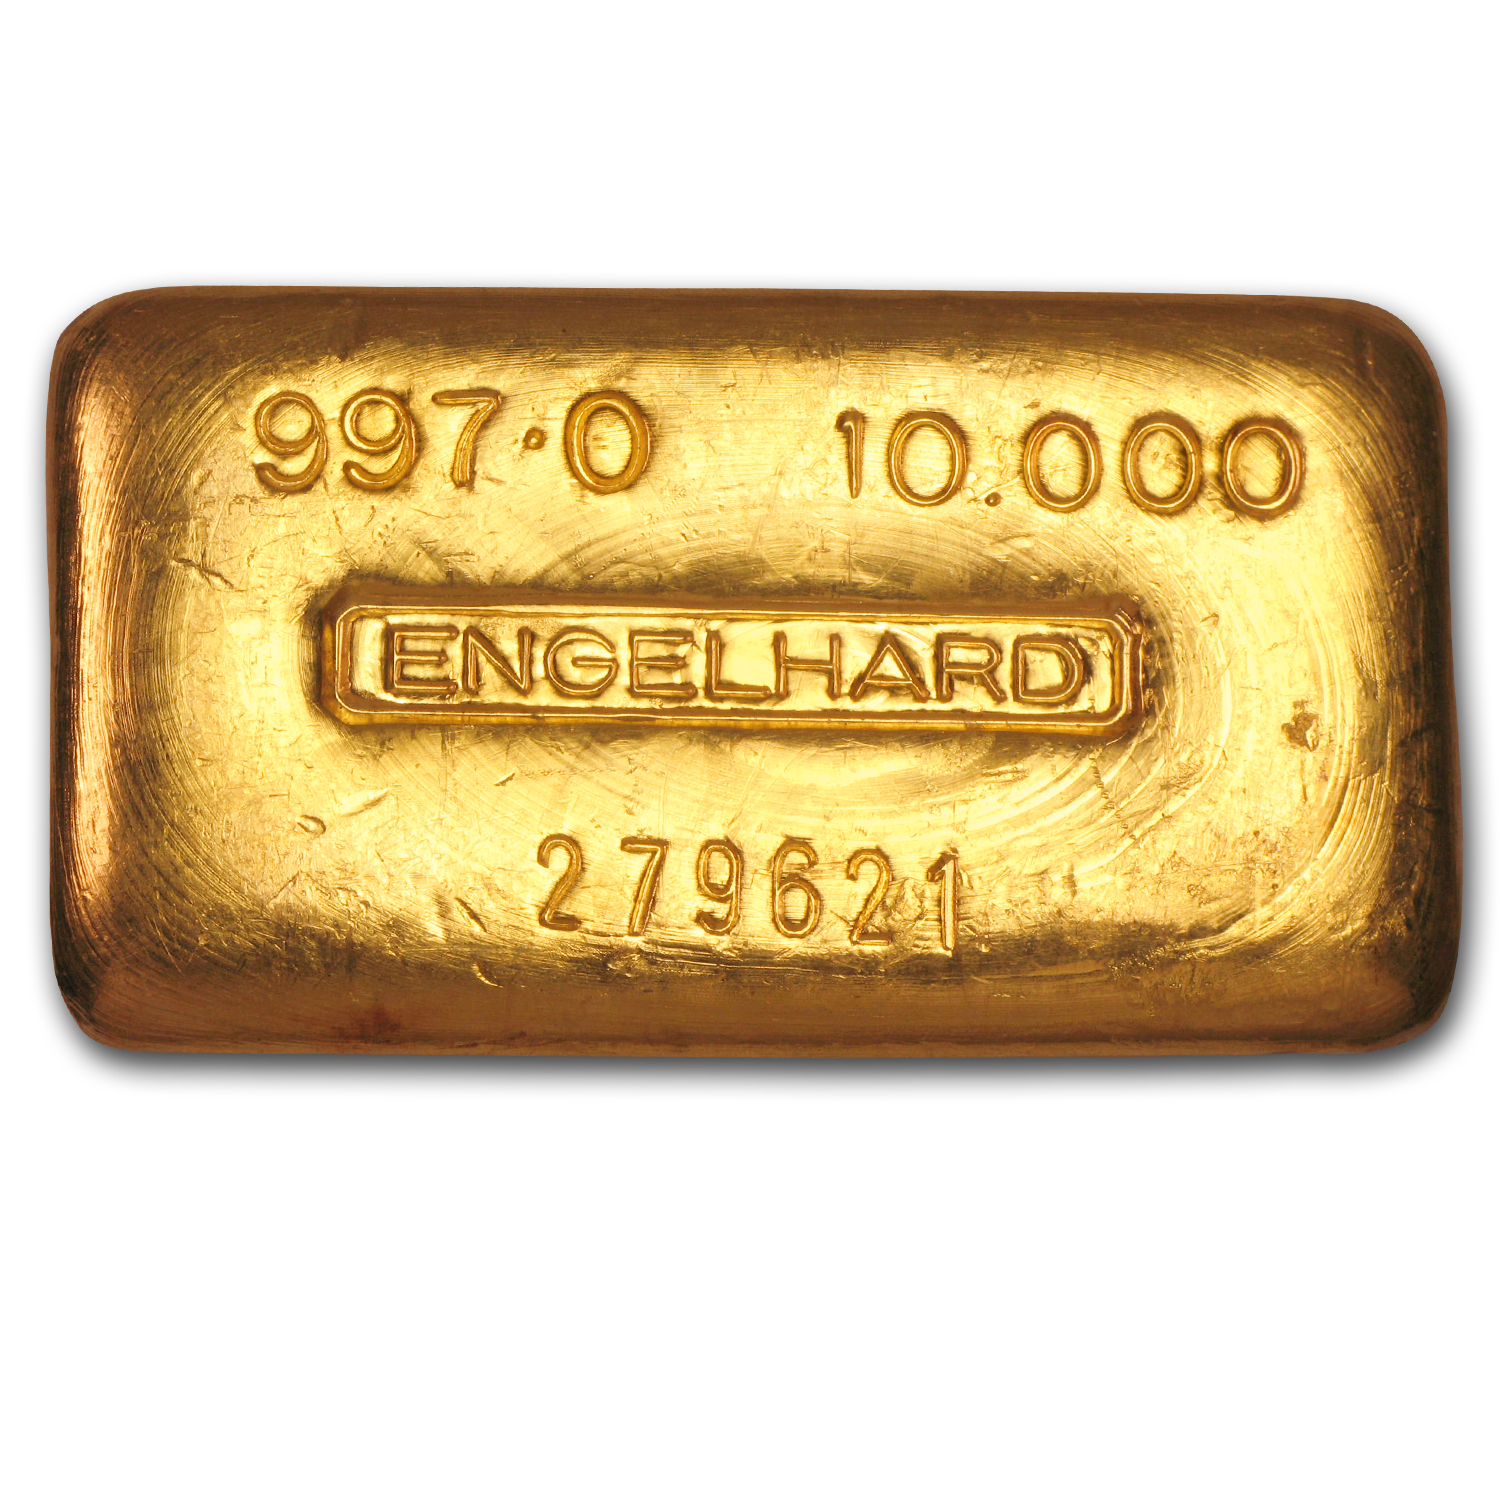 10 oz Gold Bars - Engelhard (Loaf-Style/Poured, 997 Fine)